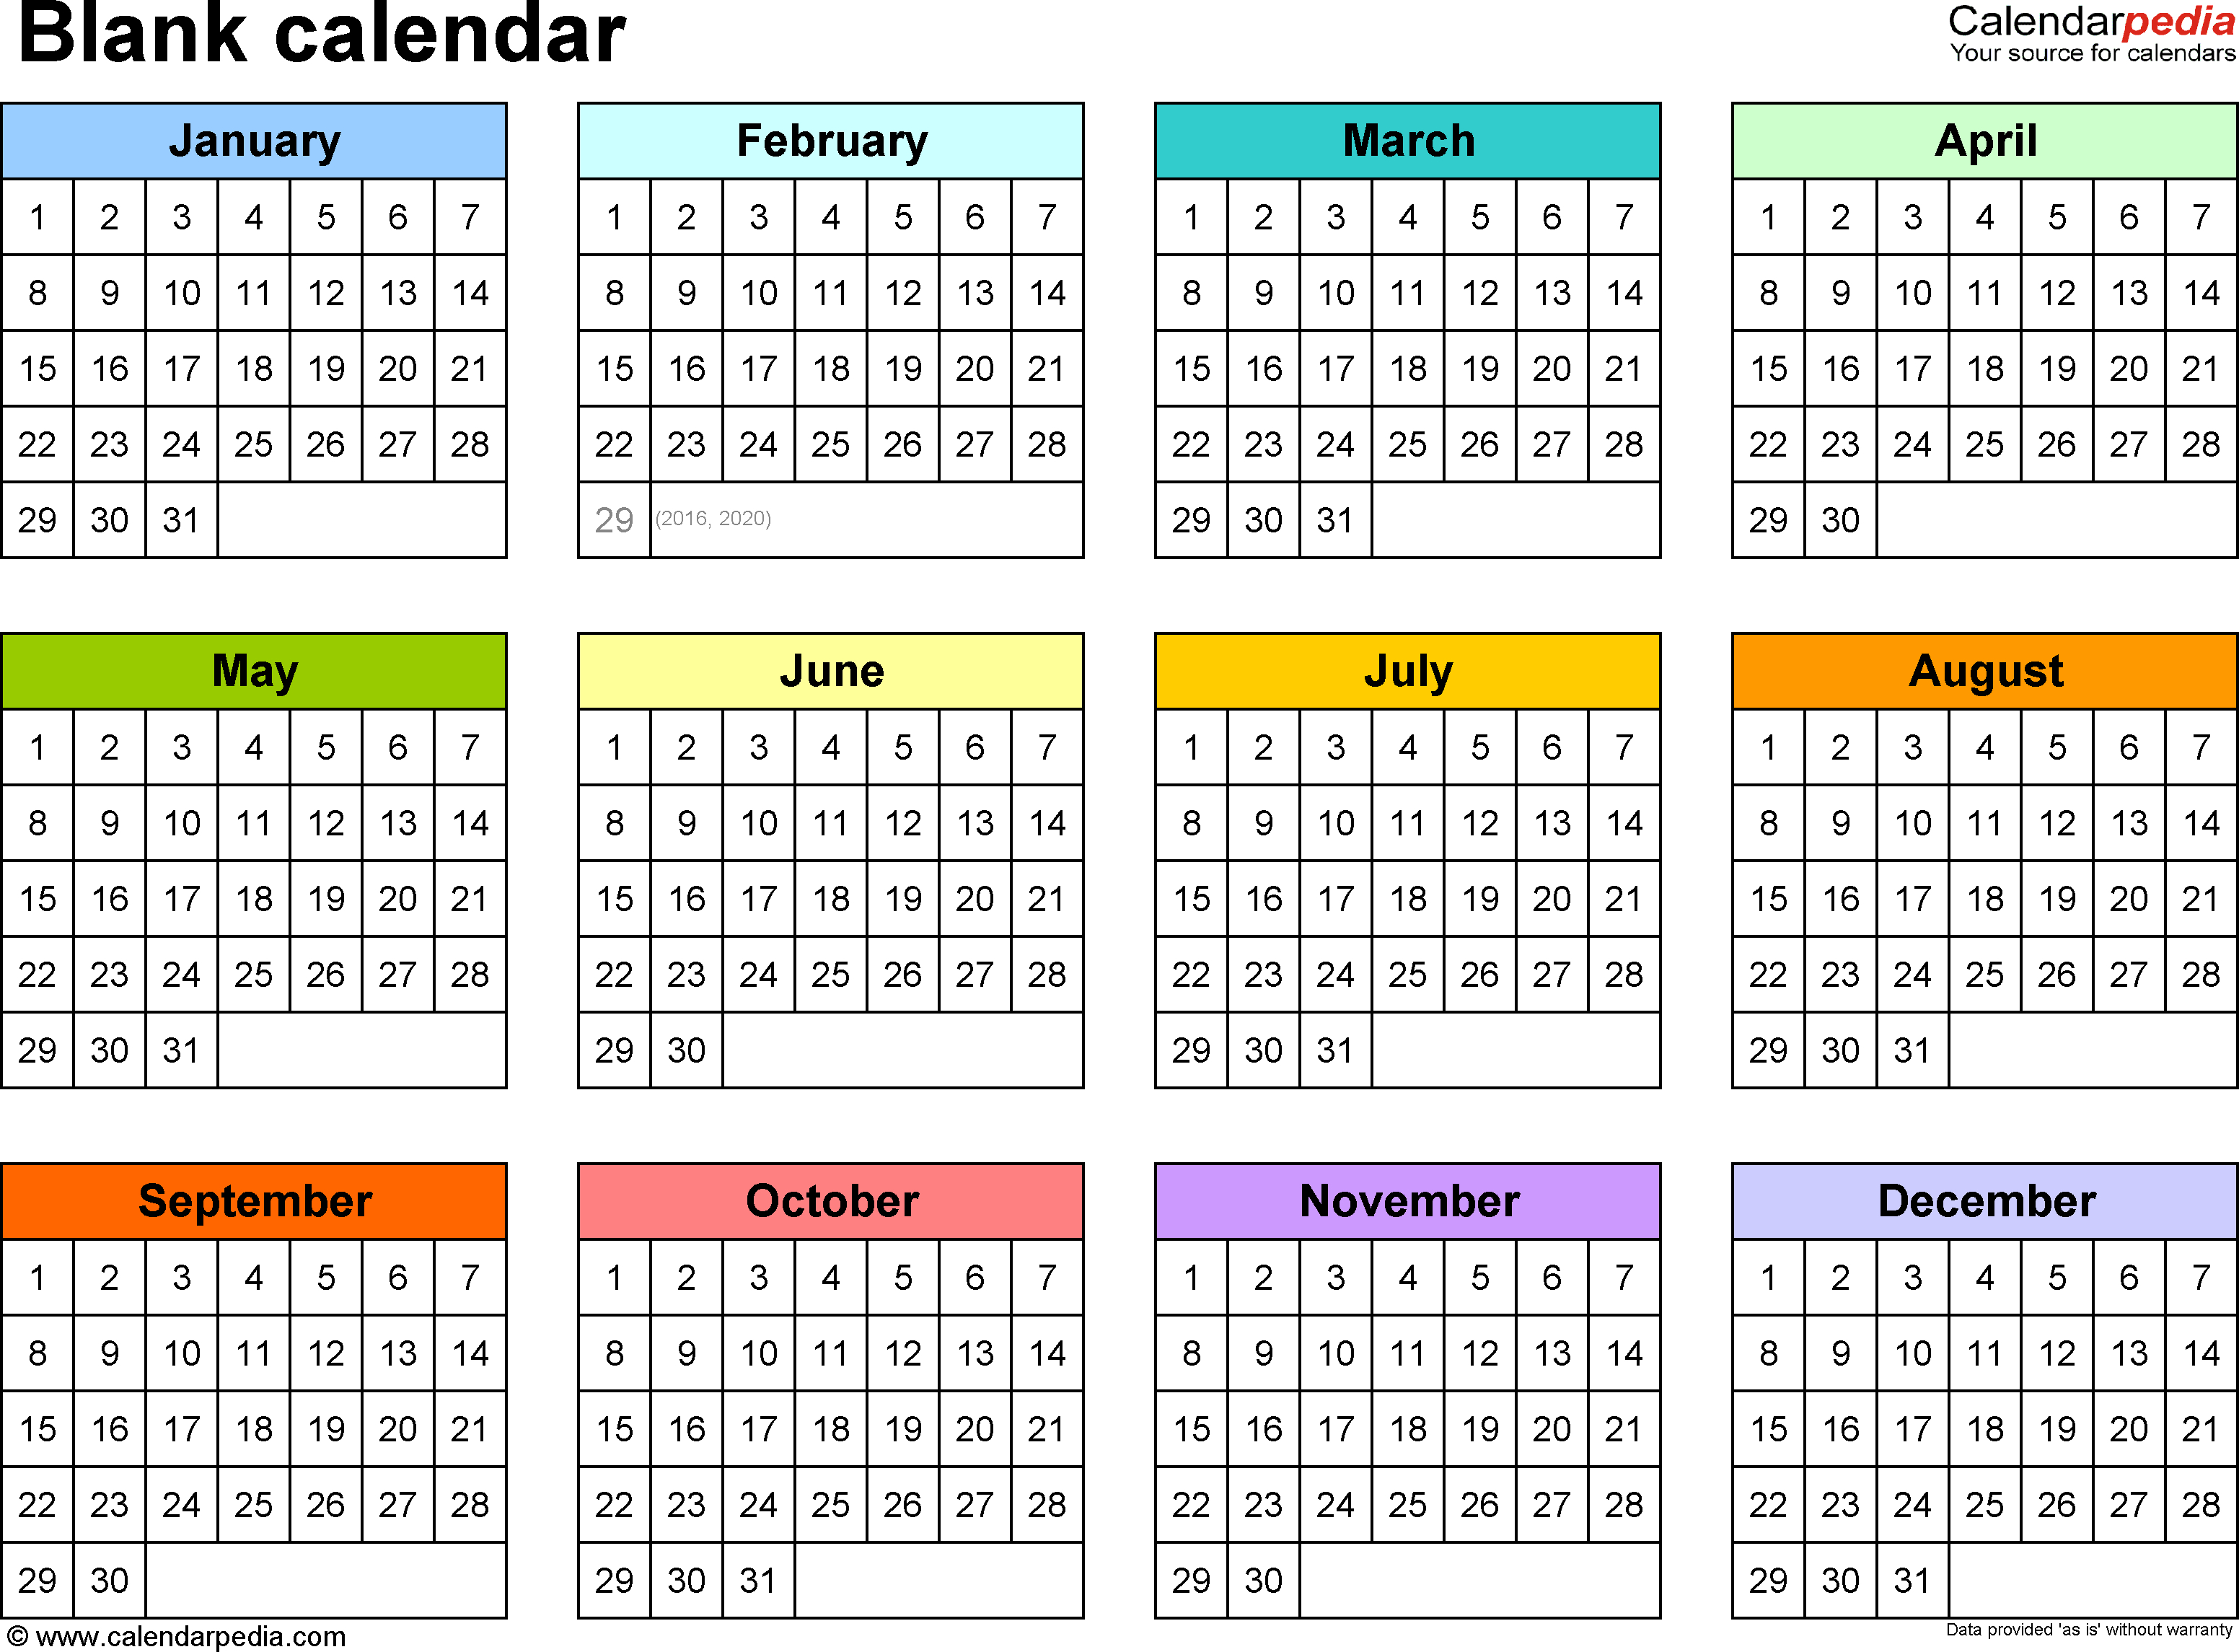 Blank Calendar - 9 Free Printable Microsoft Word Templates inside Calendar Printable One Page Templates